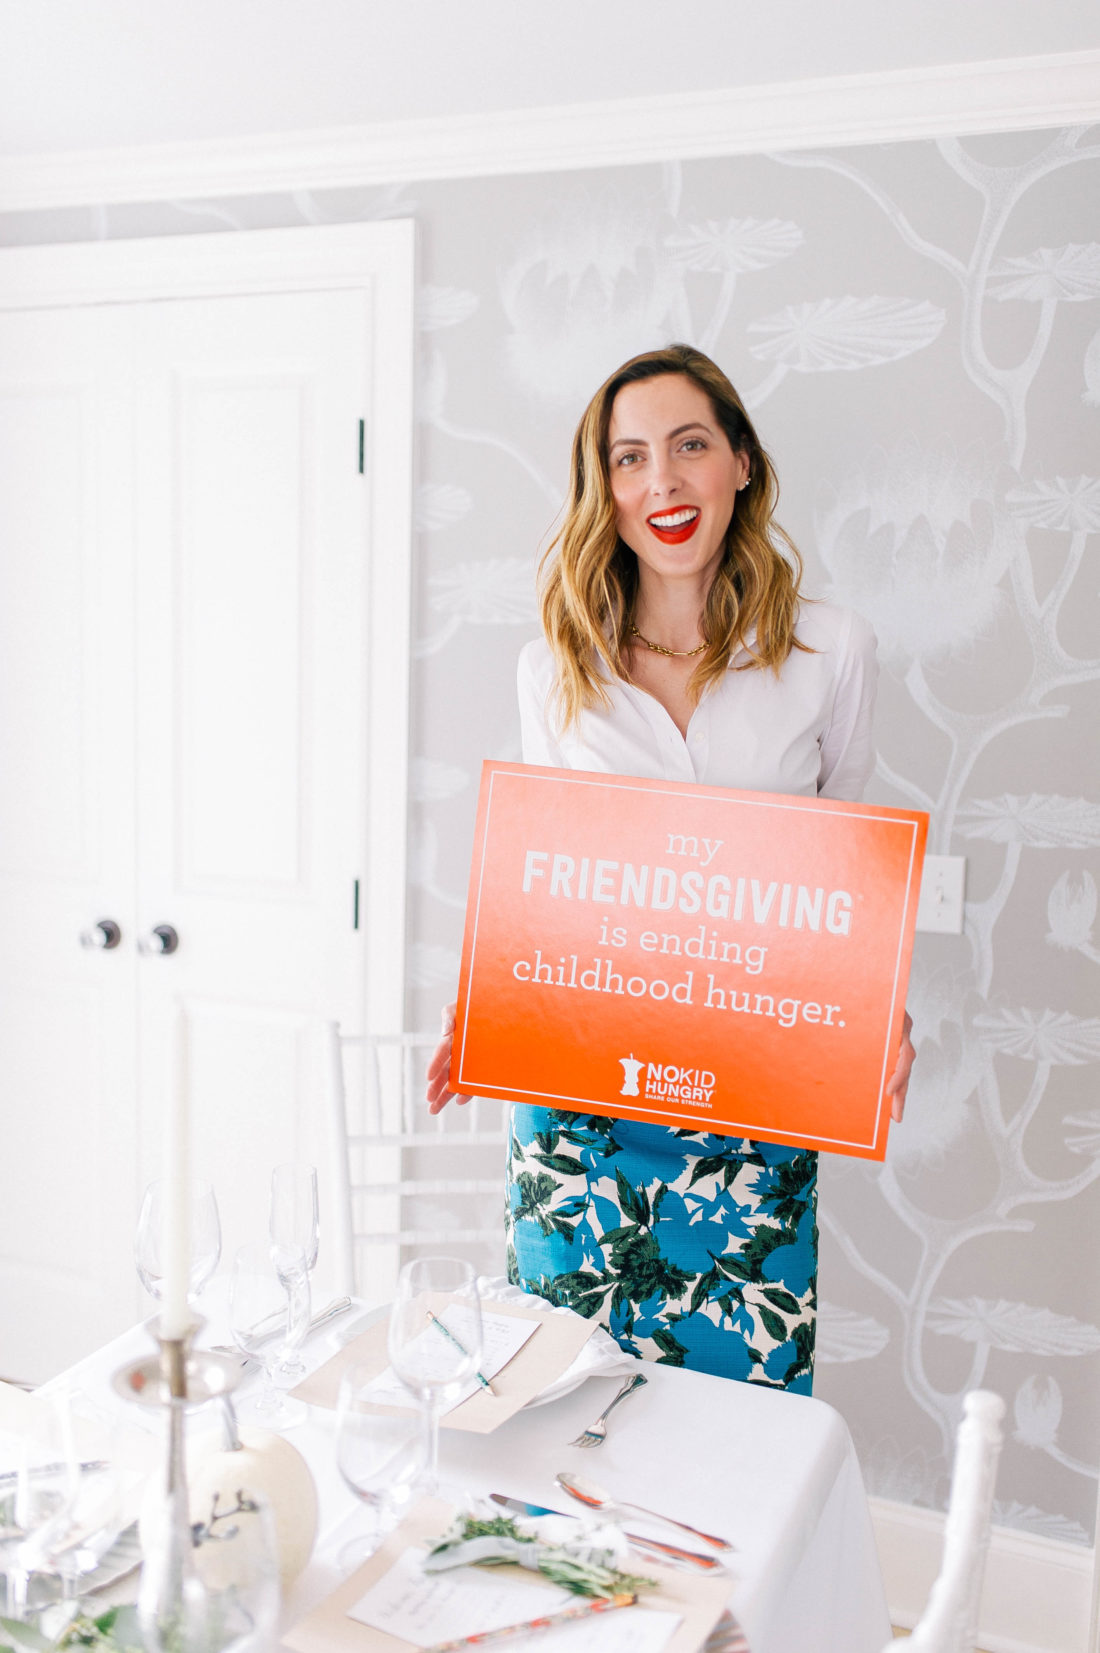 Eva Amurri Martino holds up a sign in the dining room of her connecticut home as part of her Friendsgiving event for No Kid Hungry